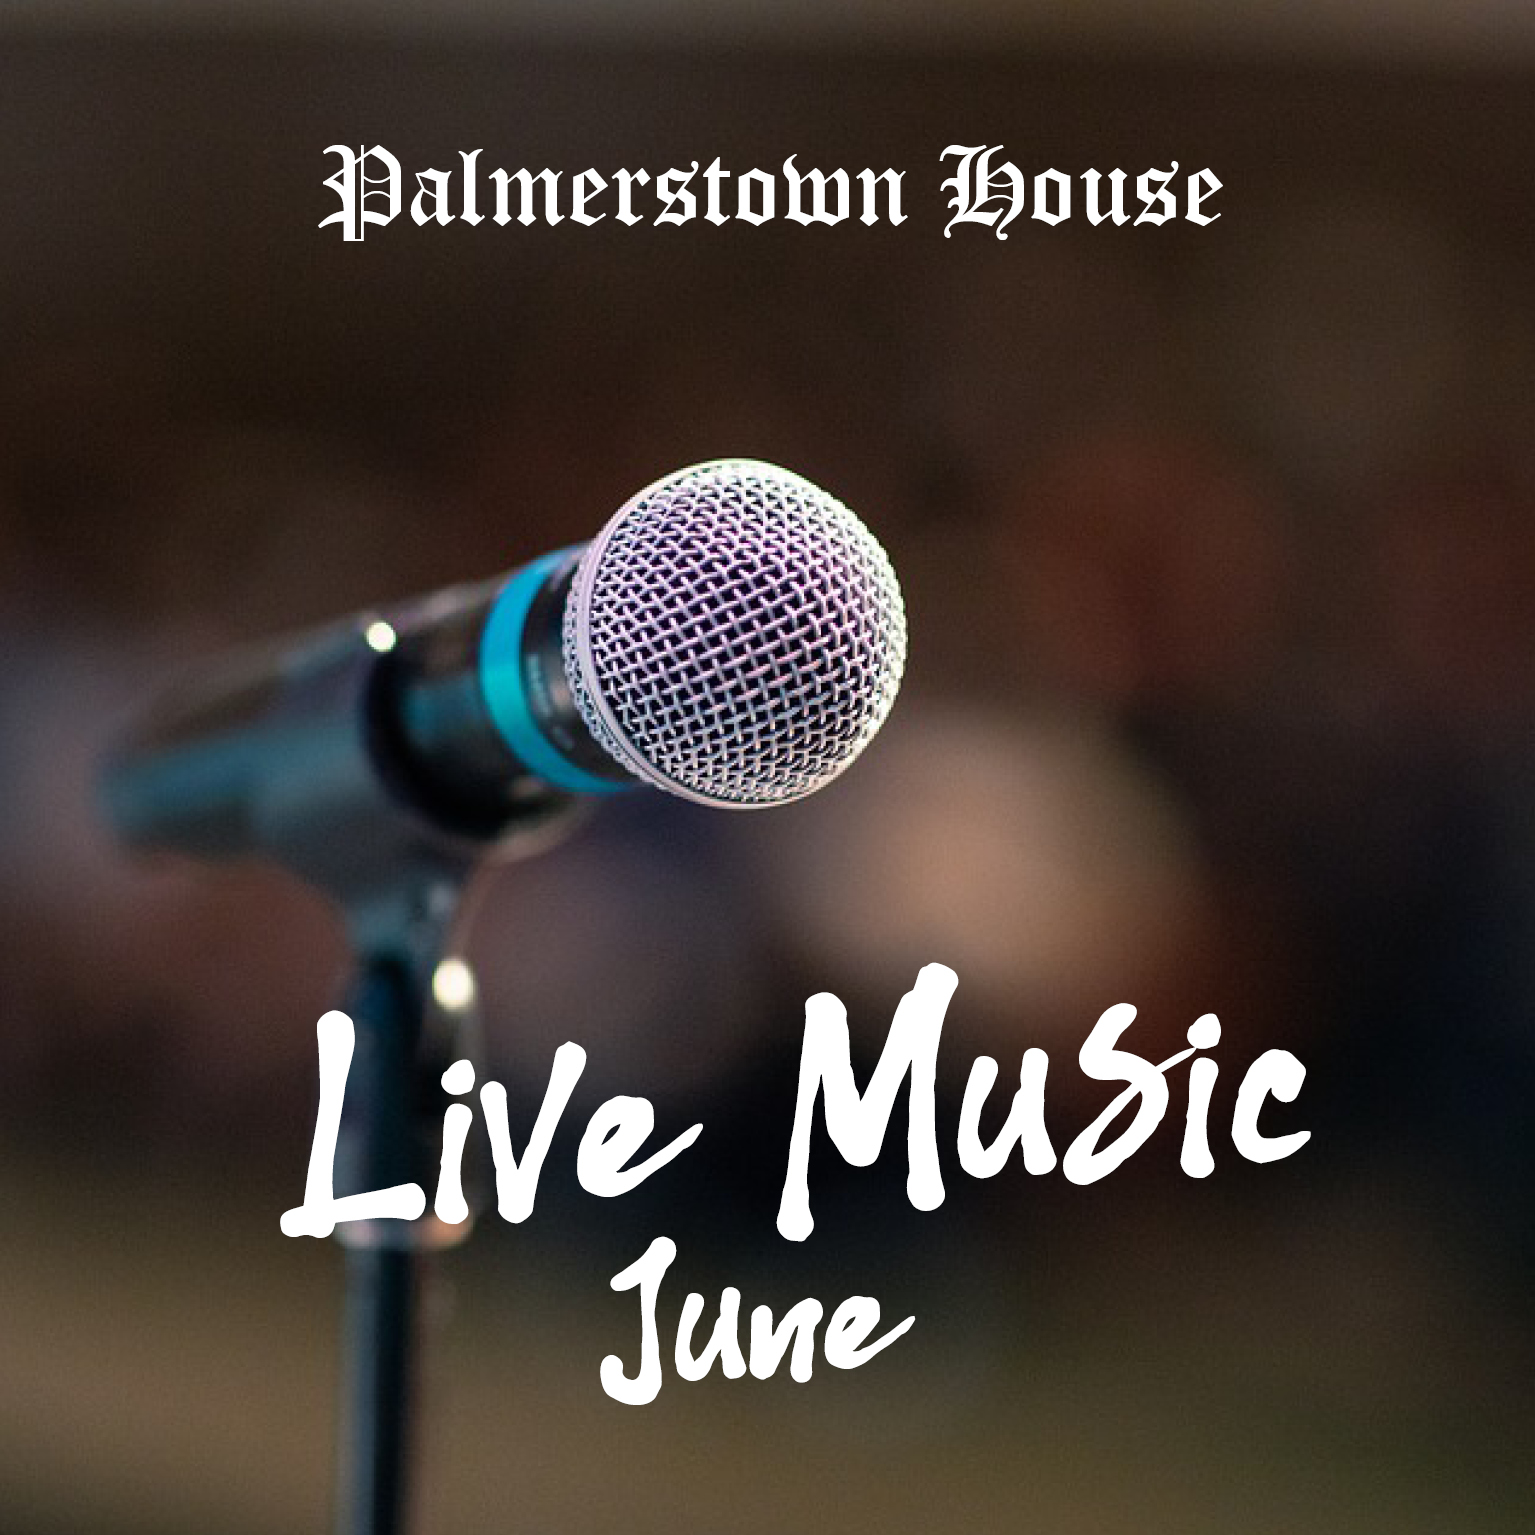 Live Music at Palmerstown House every weekend in June. Join us for acts such as James Bermingham's George Michael Tribute, Back For Good and Electric Lemon.